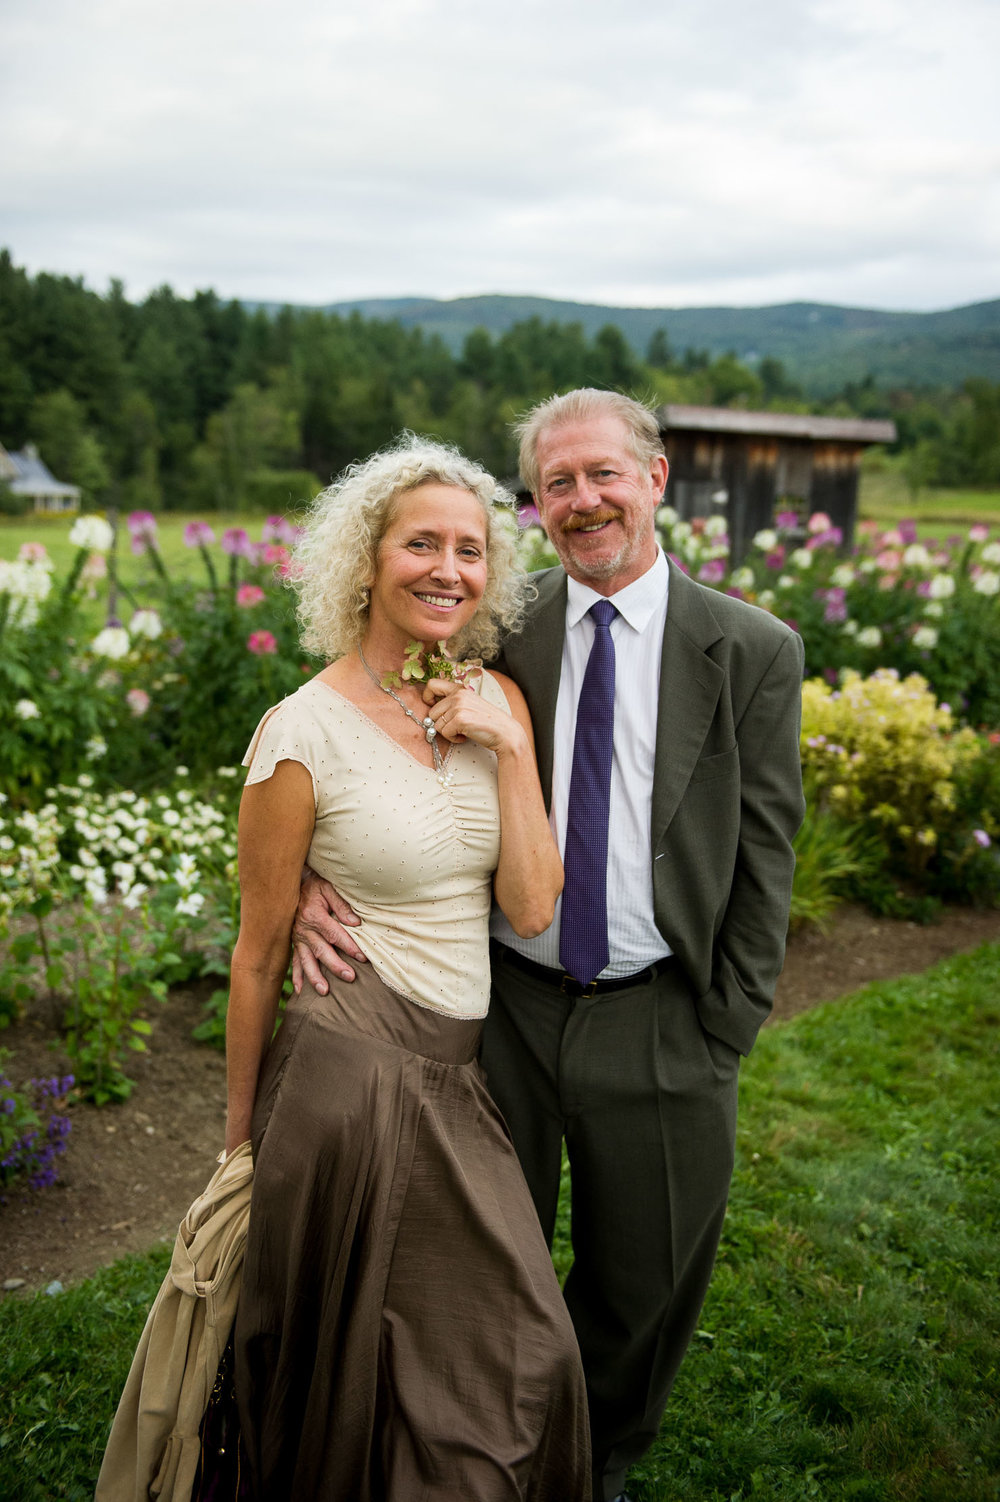 VERMONT-BARN-NYC-WEDDING-PHOTOGRAPHER-1092.jpg